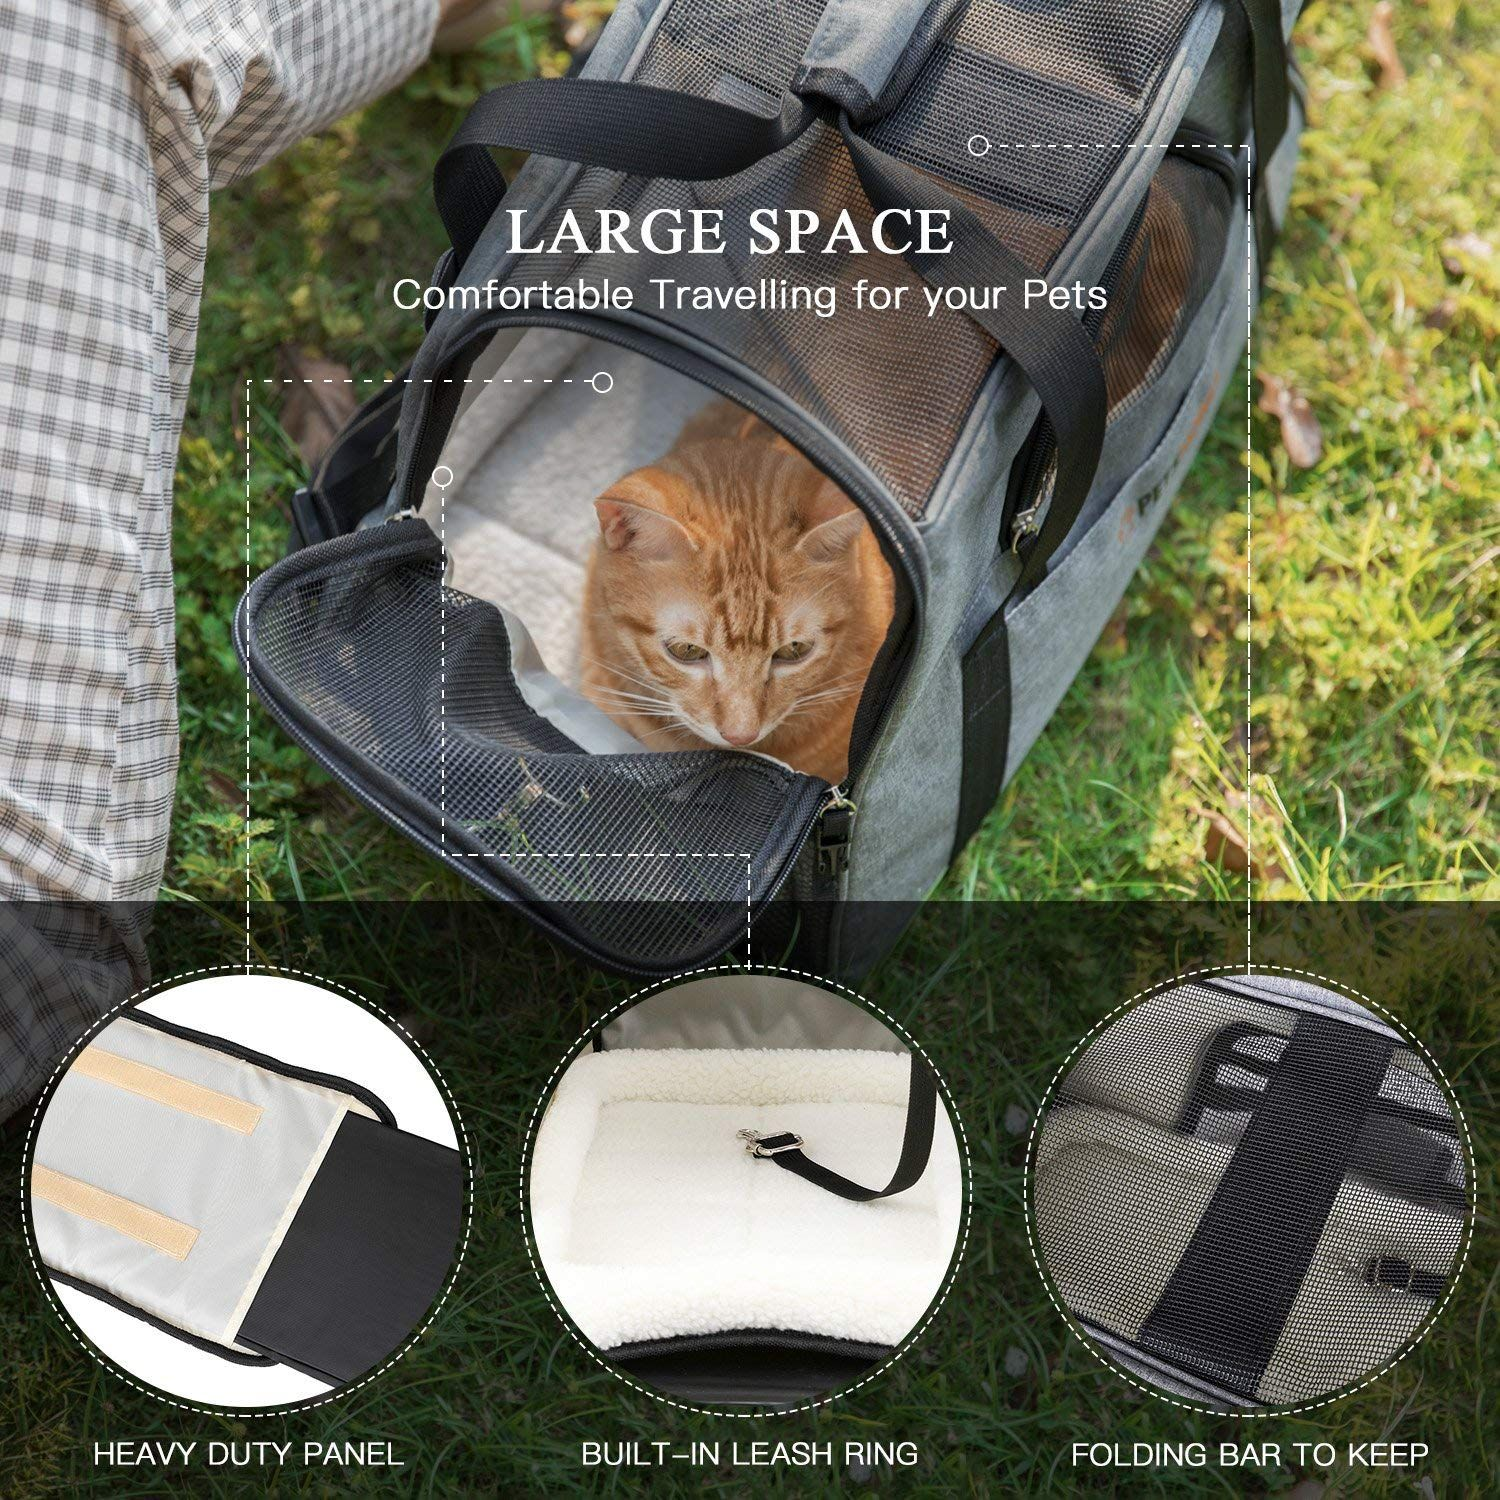 d76a31ac00 Petshoney New Version Dog and Cat Carrier Soft Sided with Pet Mats- Airline  Approved Pet Travel Carrier with Convenient Side Pockets - New Folding Bar  ...